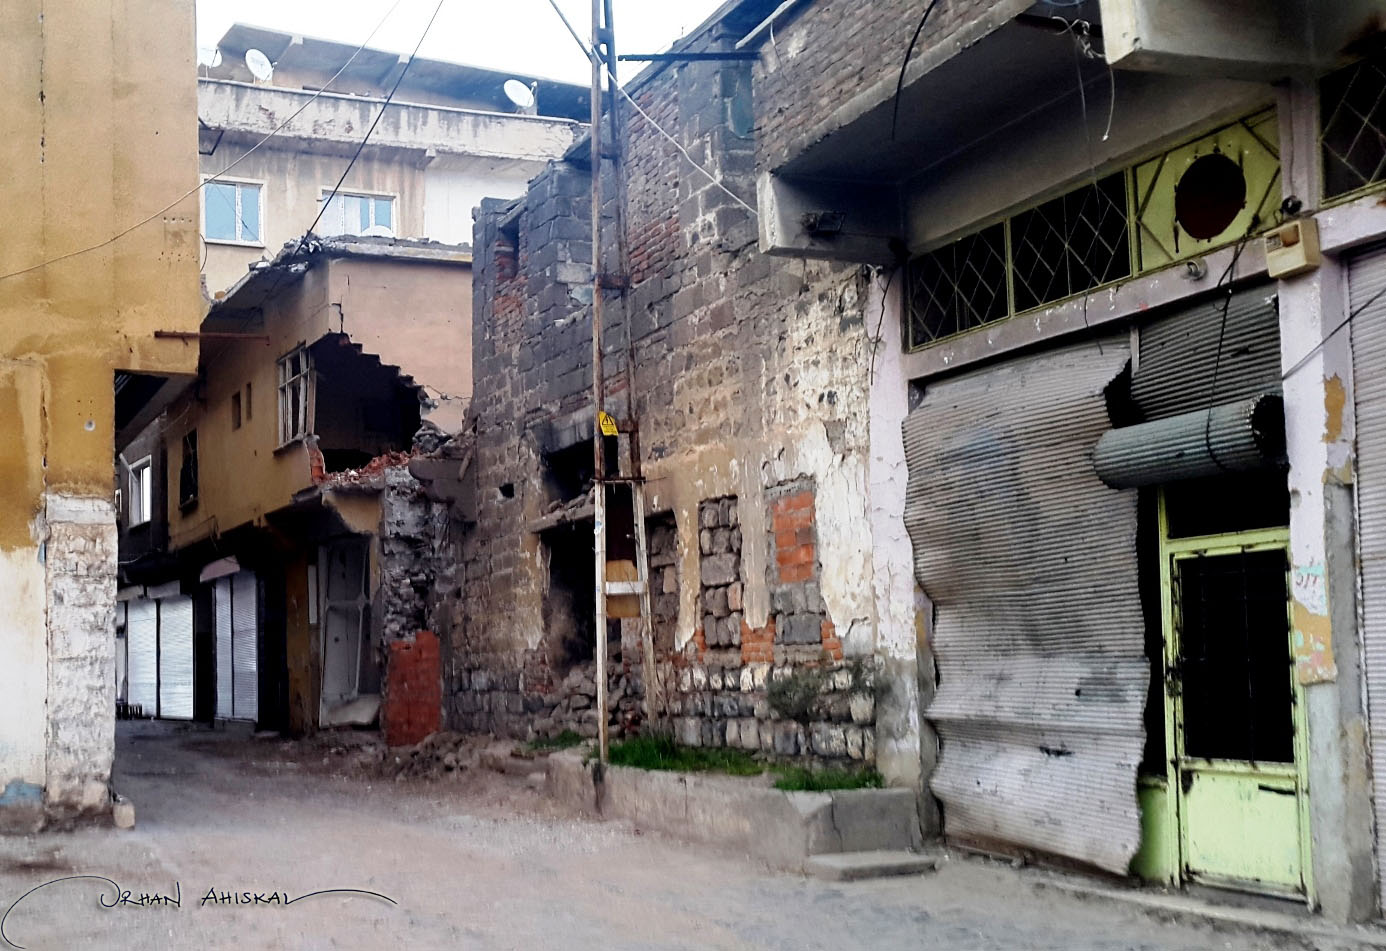 A street at Sur District, Diyarbakır. Photo: Orhan Ahıskal